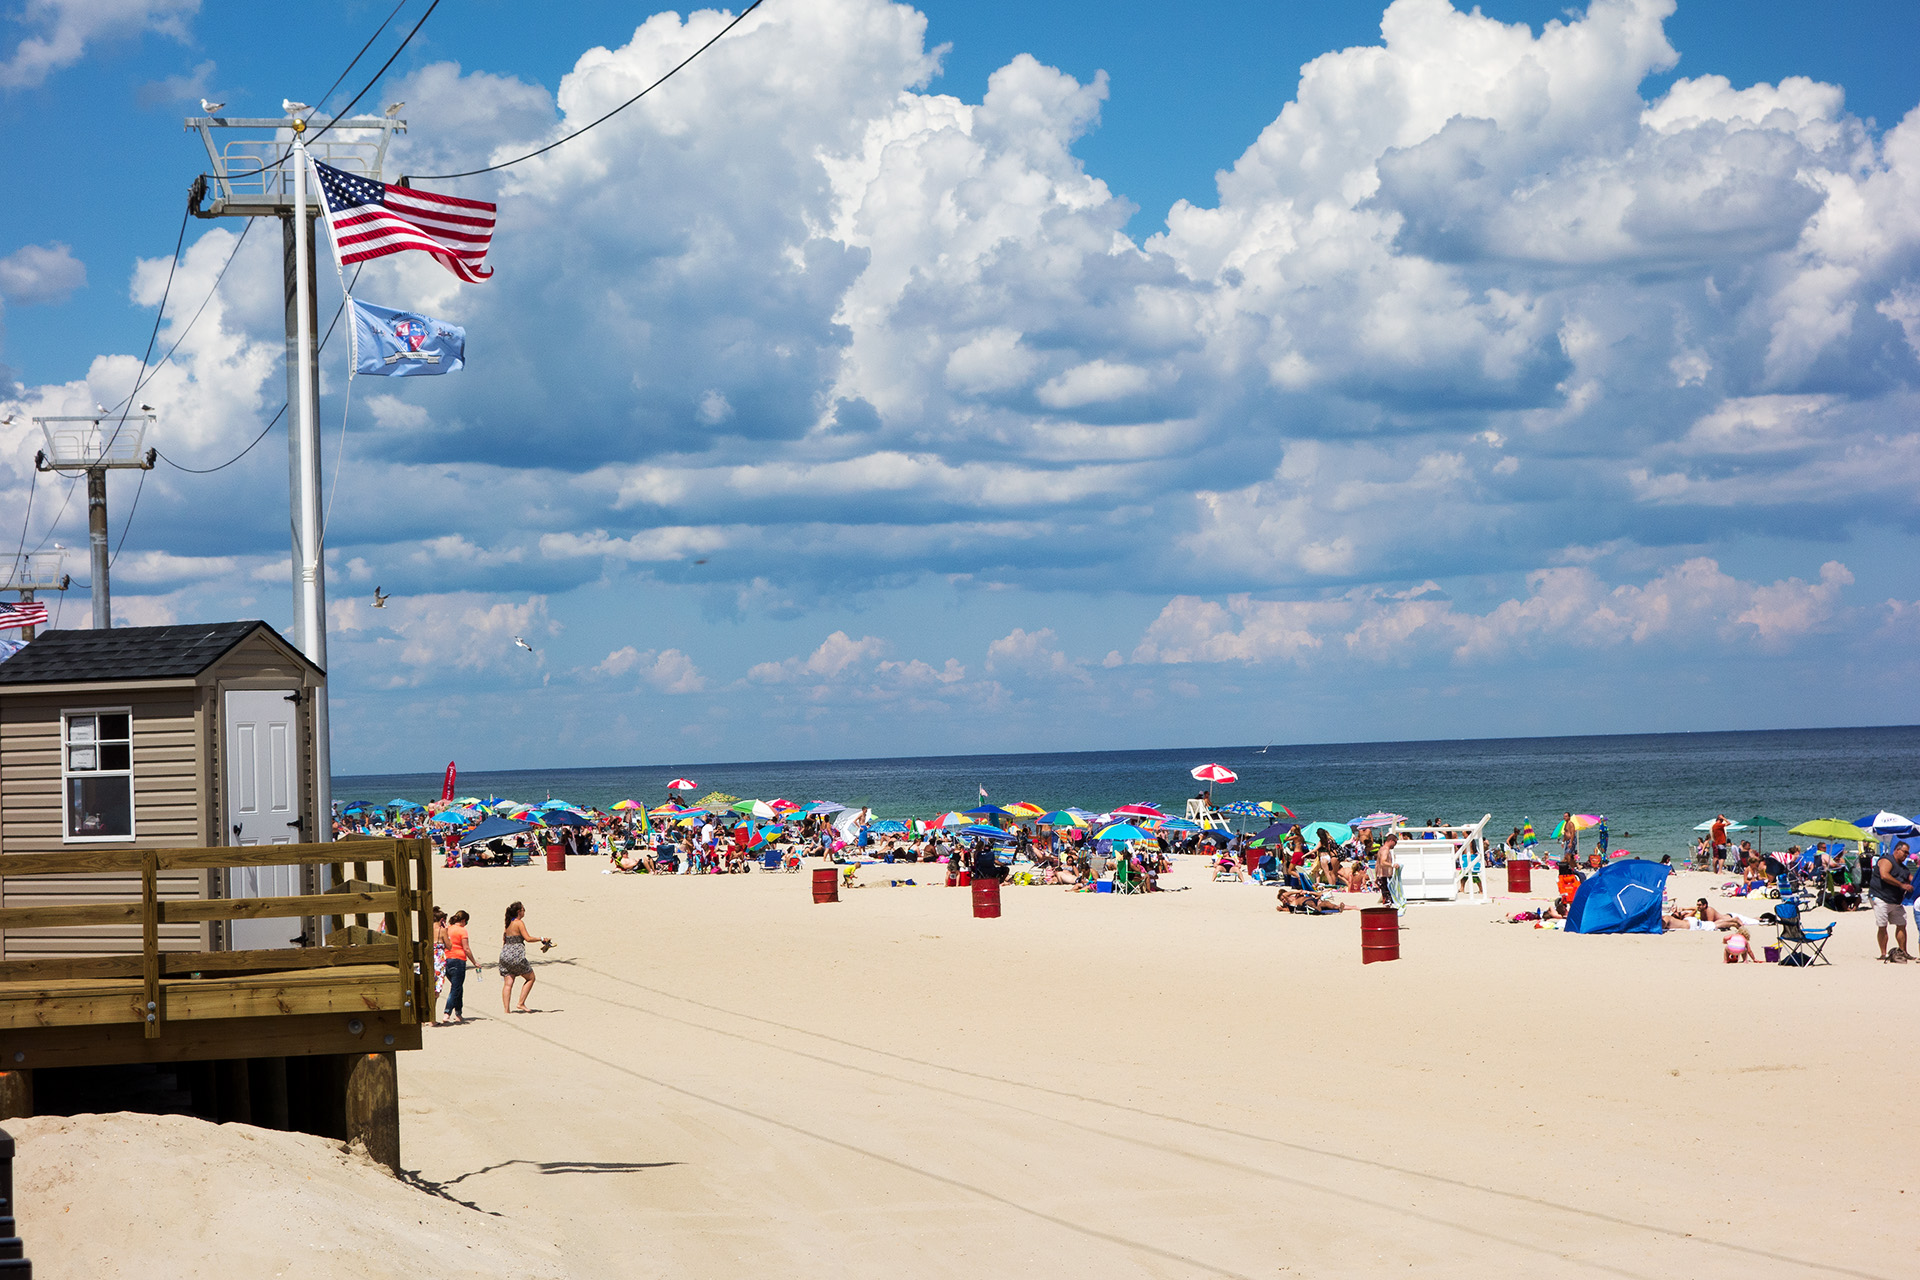 The beach at Seaside Heights, NJ.